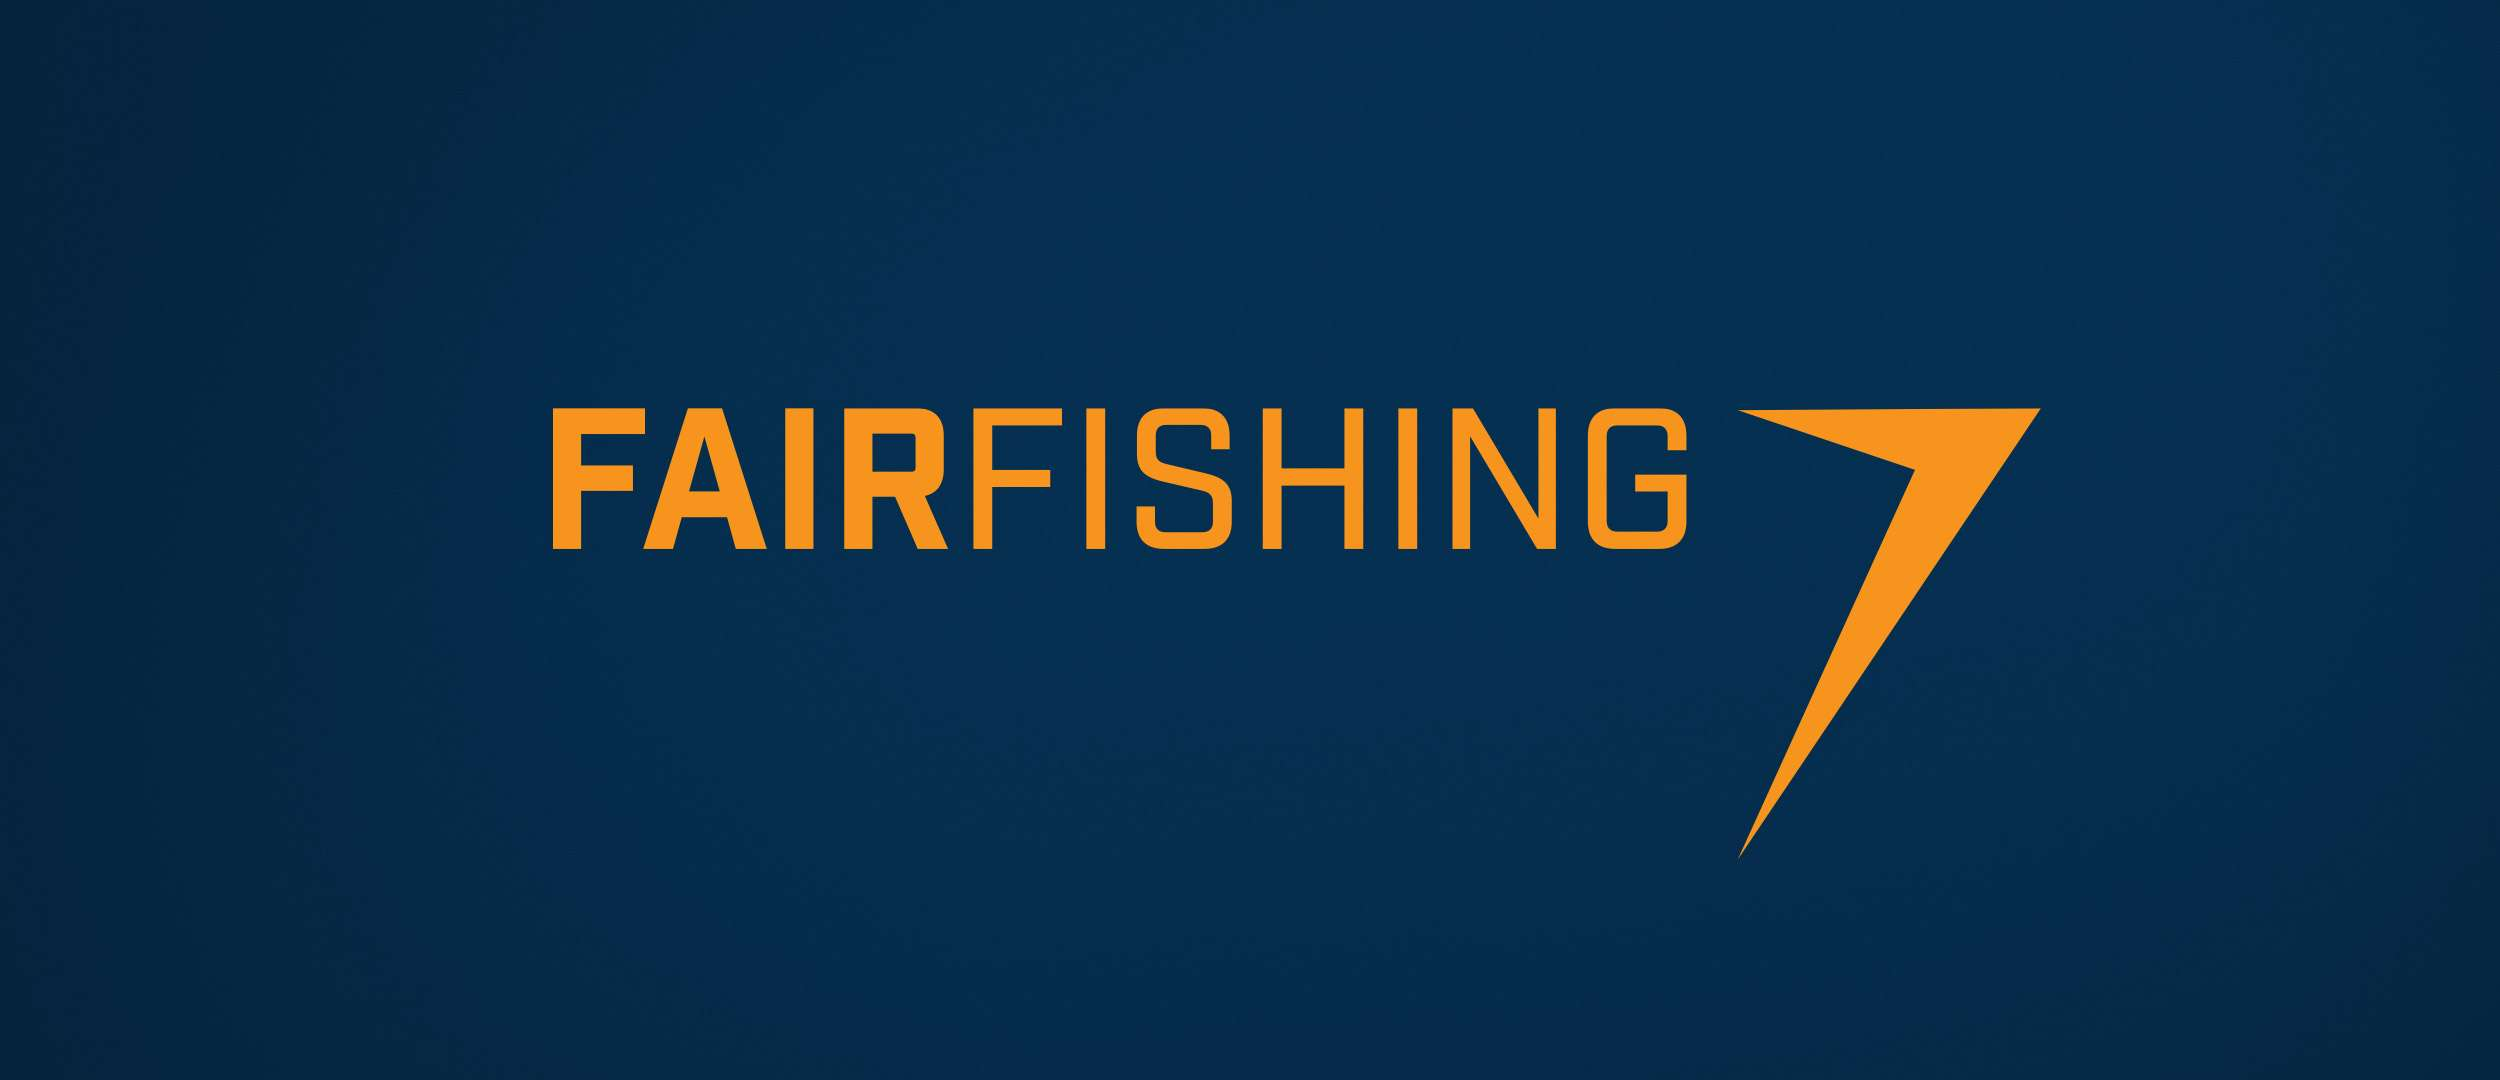 FairFishing logo